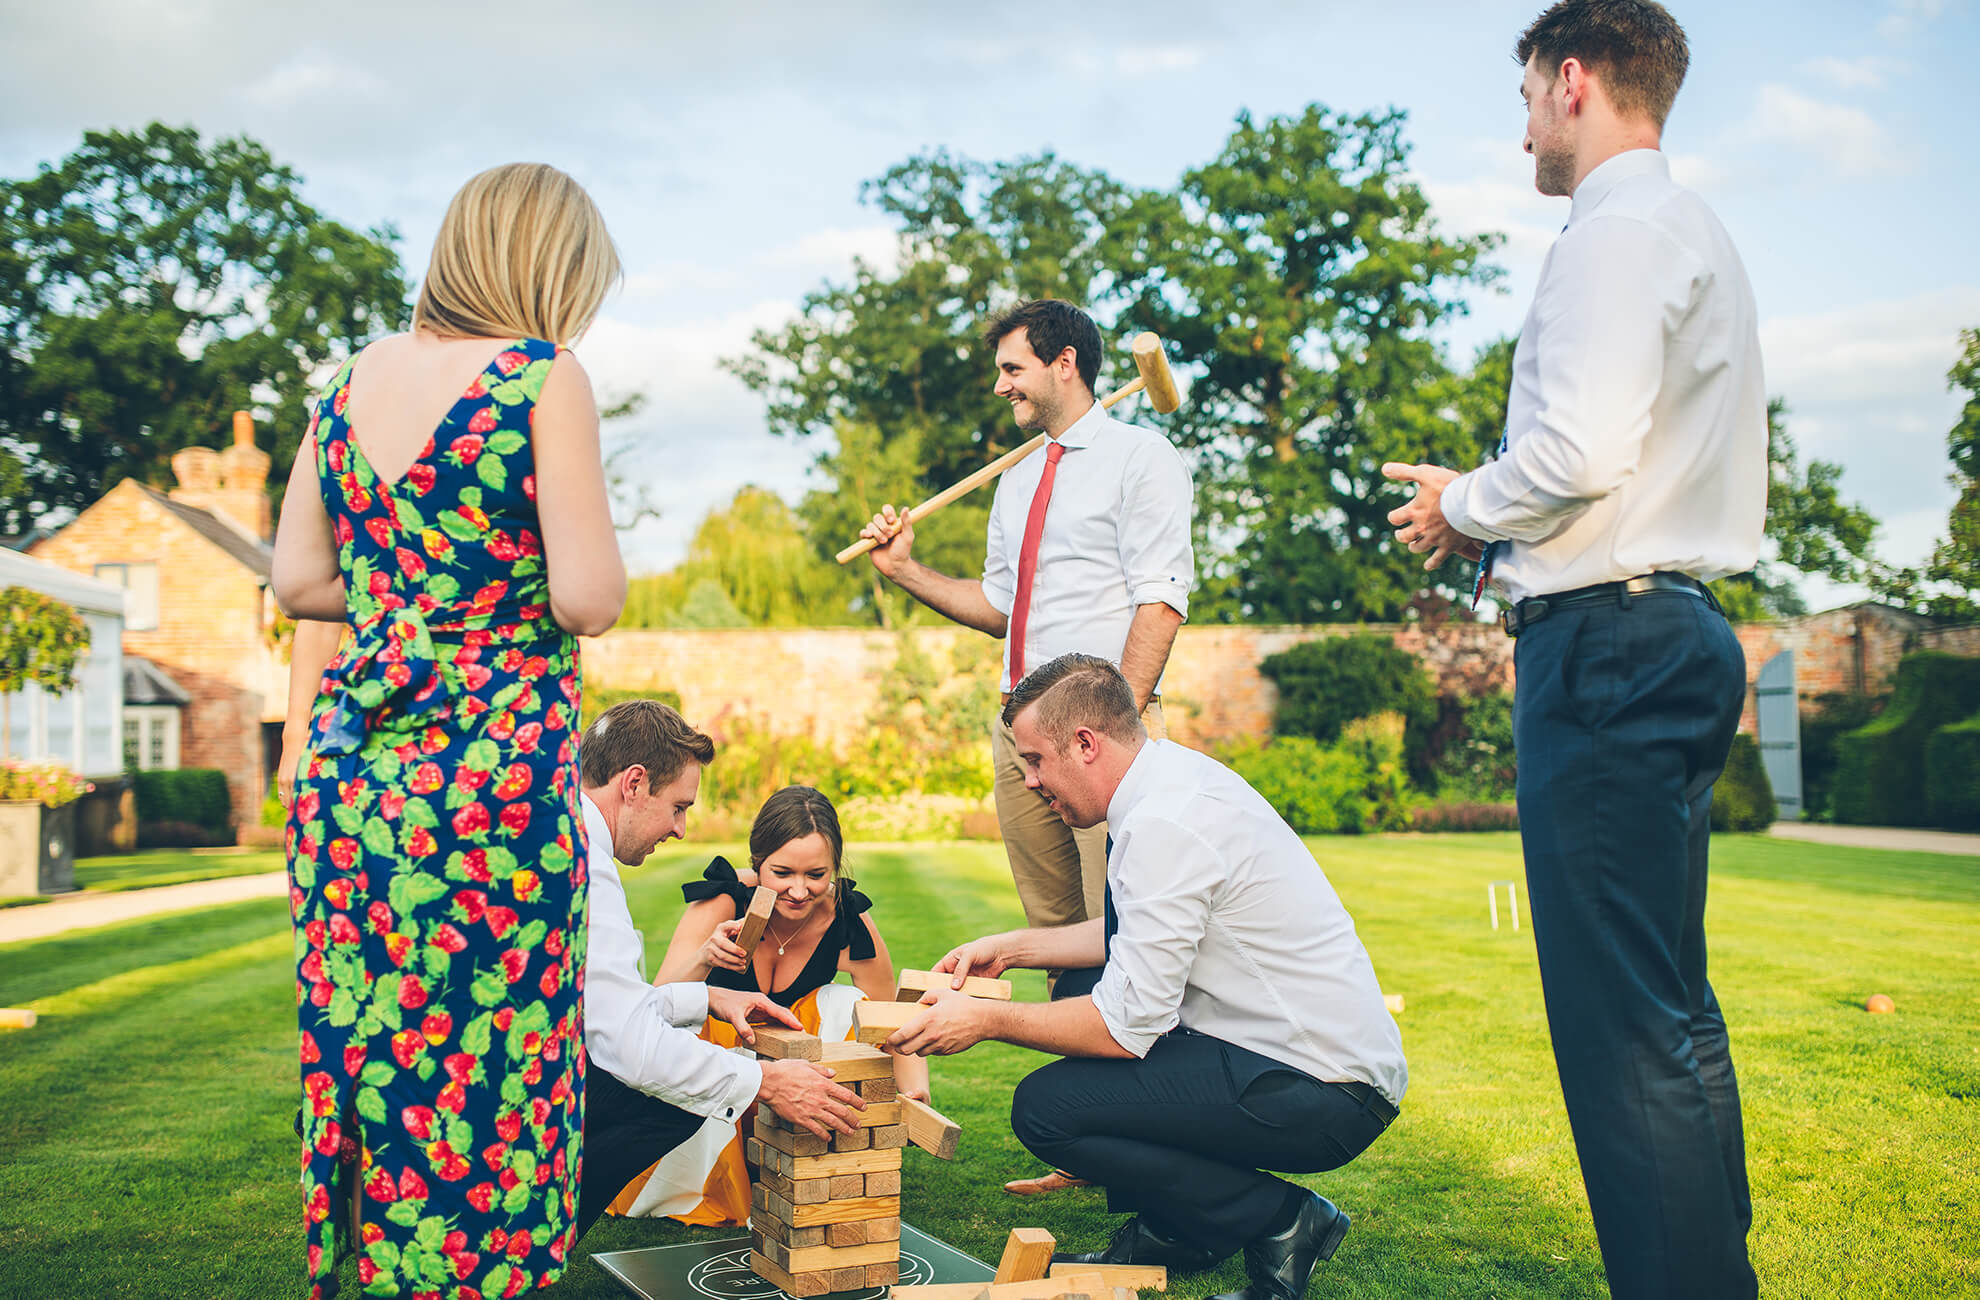 Wedding guests enjoy lawn games in the gardens at Combermere wedding venue in Cheshire